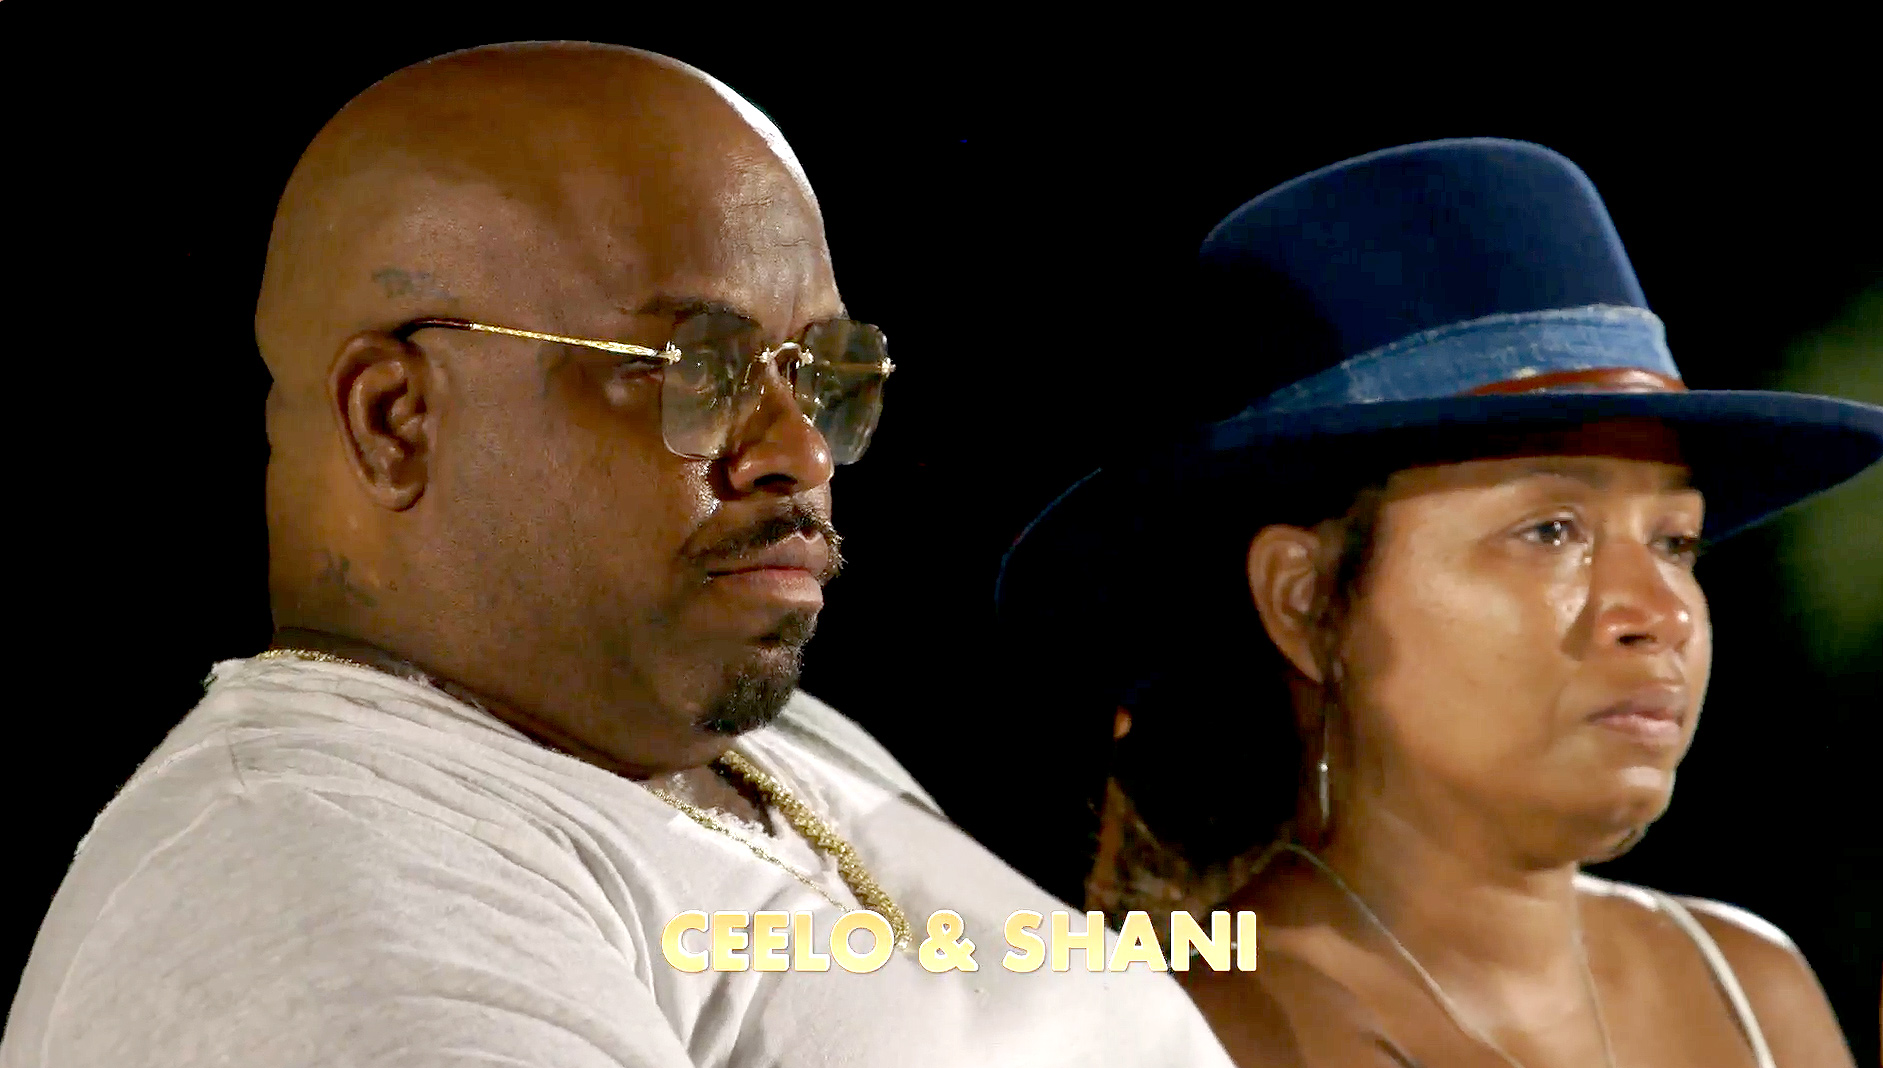 CeeLo Green and Fiancée Shani Join Newest Season of Marriage Boot Camp: Hip Hop Edition